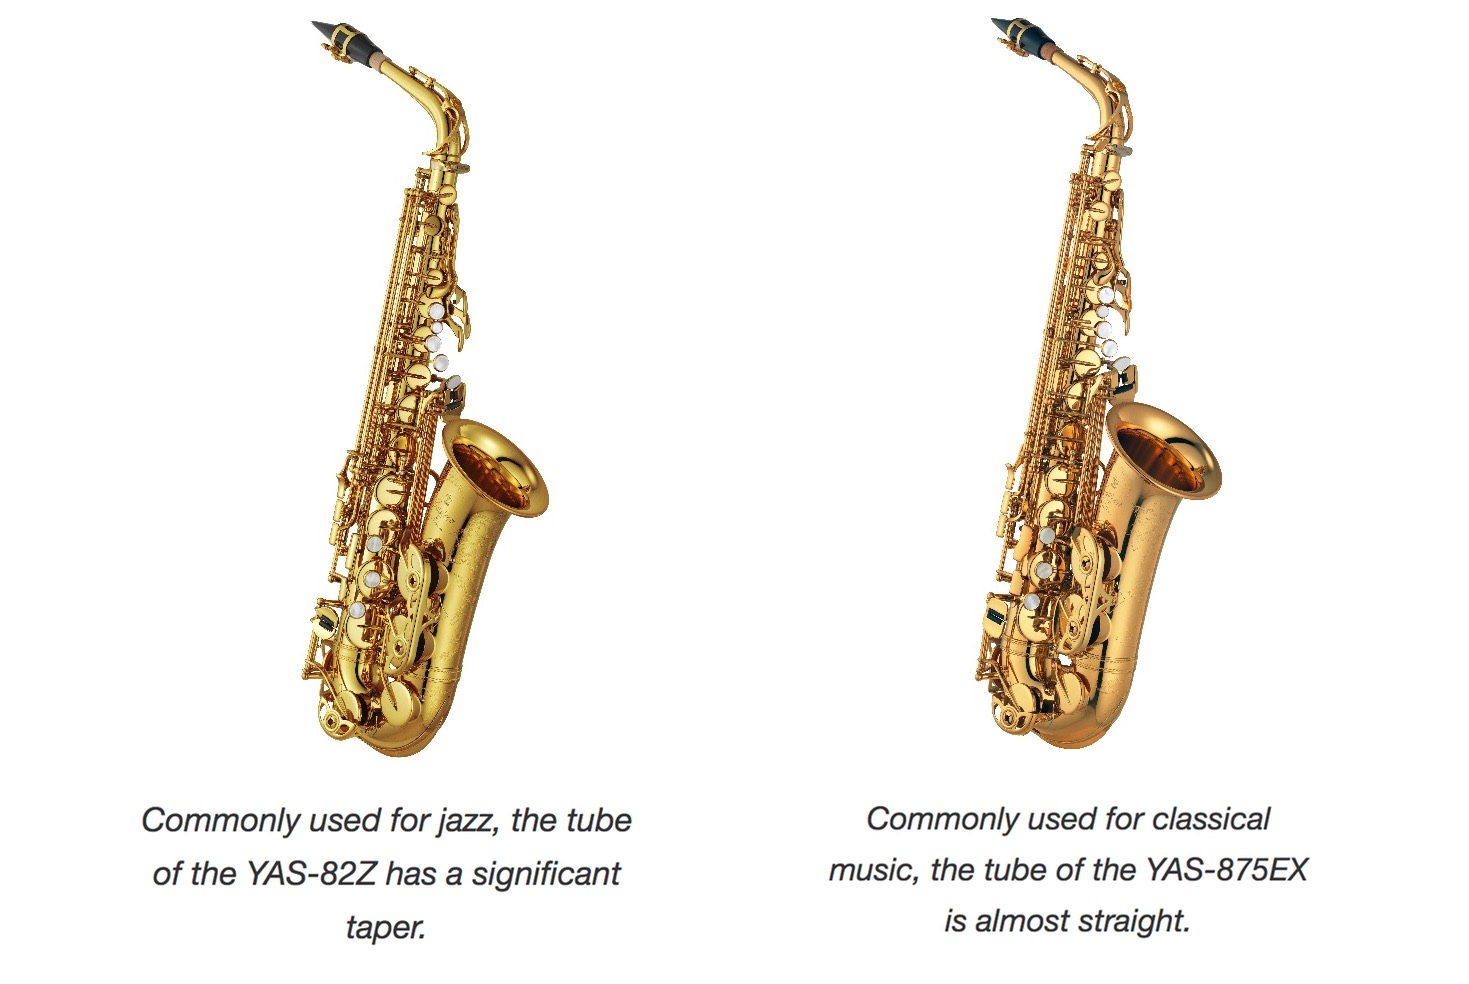 Five Saxophone Facts You May Not Know